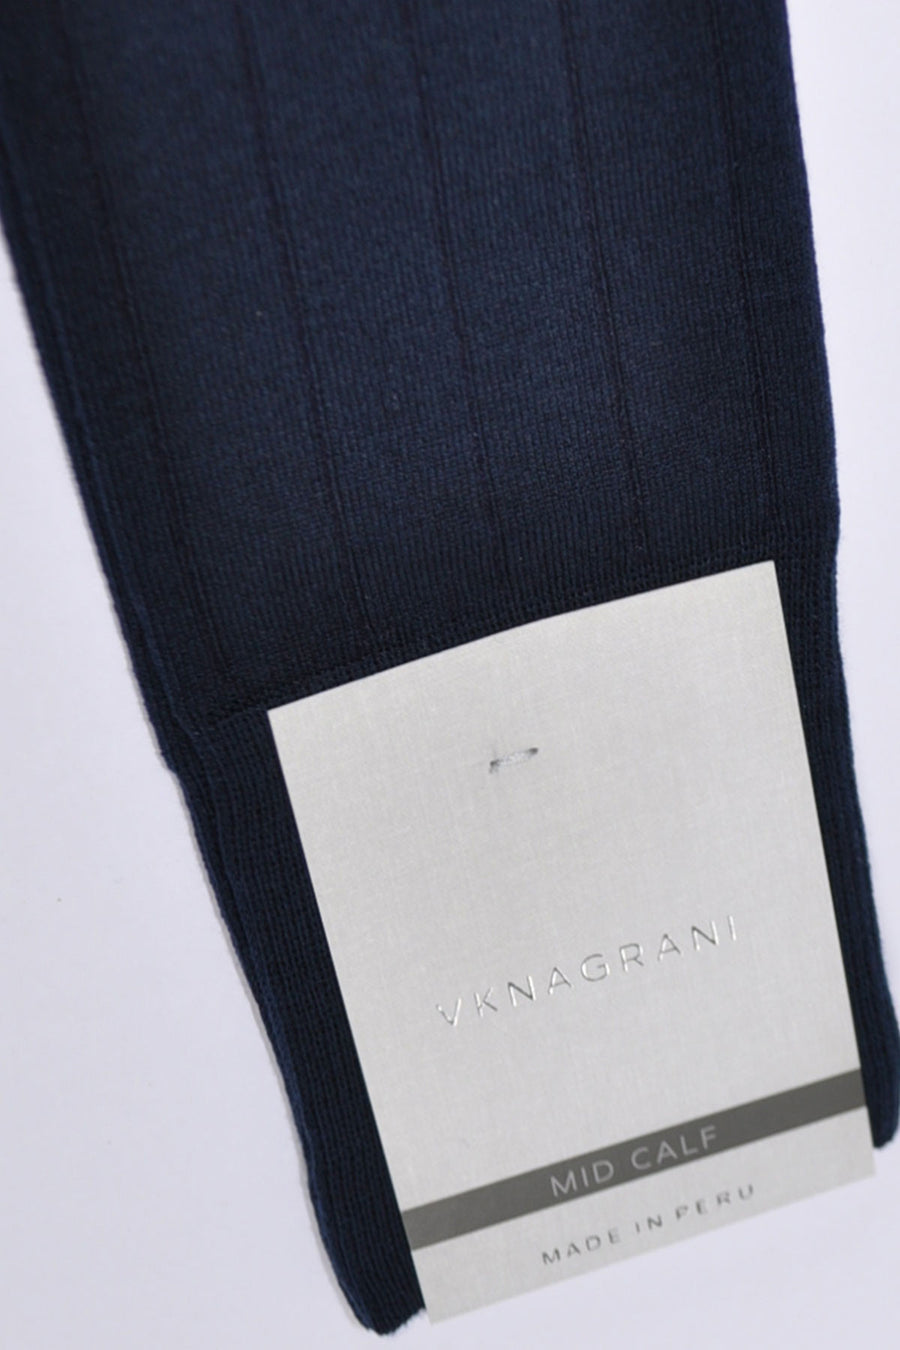 VK Nagrani Men Socks Navy